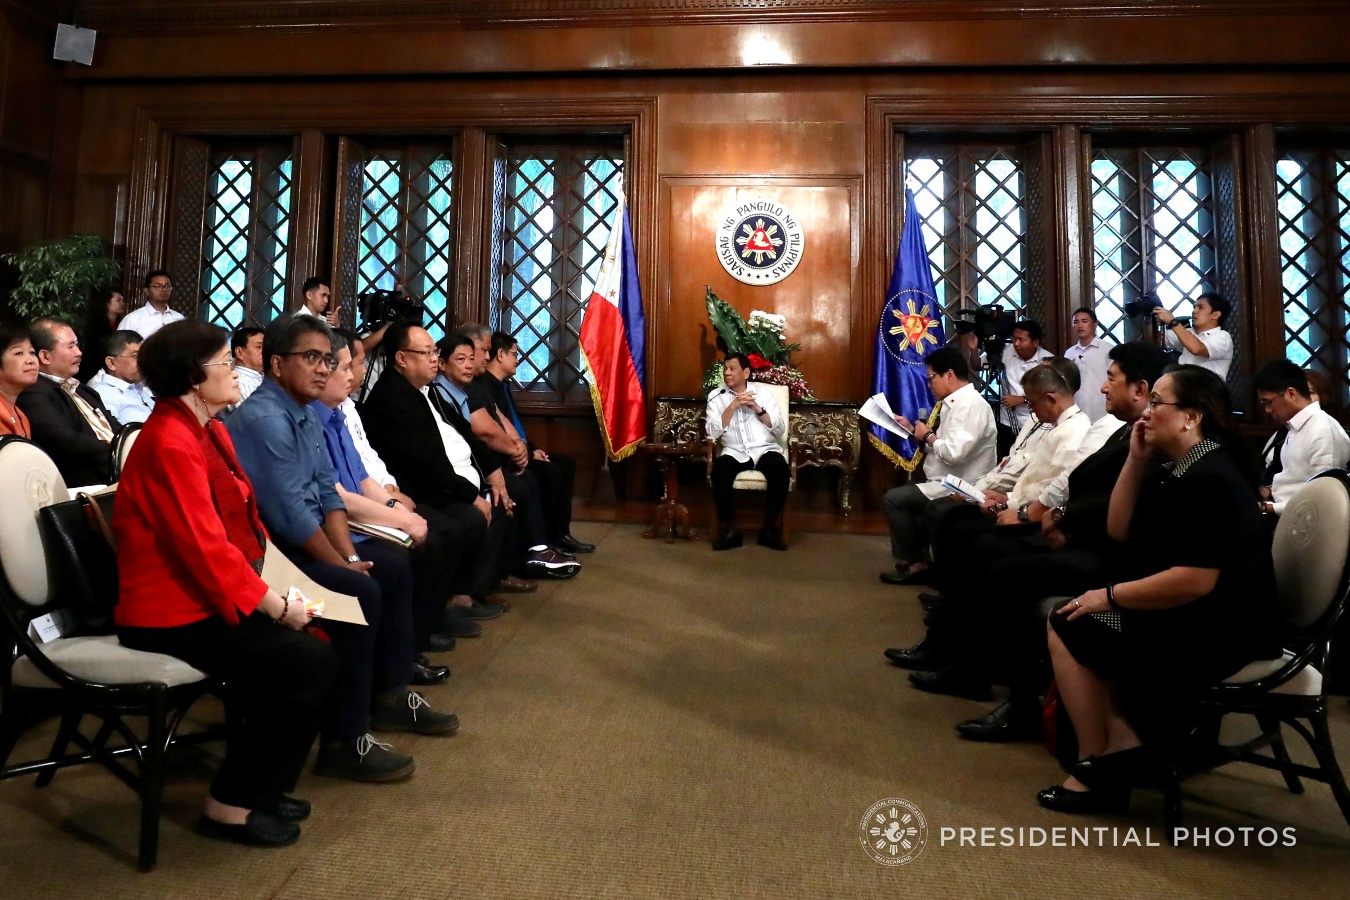 President Rodrigo Roa Duterte convenes with the various government and non-government stakeholders from the labor sector at the Malacañan Palace on February 7, 2018. Among the issues discussed include the contractualizations, wage setting, government cash subsidy, the workers' representation in Tripartite Bodies, recruitment and facilitation fees and freedom of association in economic zones. Joining the President is Labor and Employment Secretary Silvestre Bello III. RICHARD MADELO/PRESIDENTIAL PHOTO